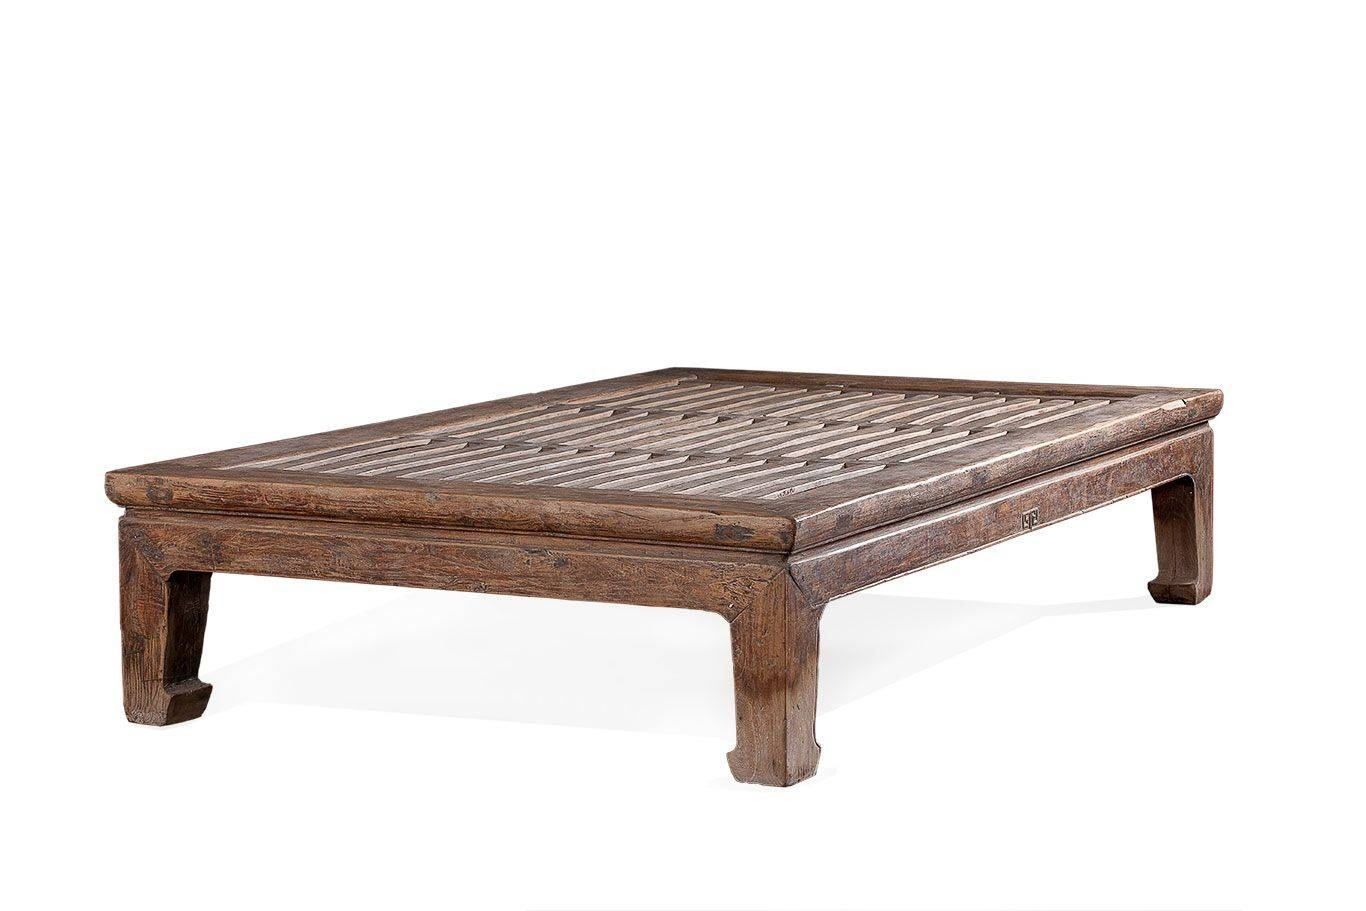 Antique Chinese Elm Coffee Table - Mecox Gardens inside Chinese Coffee Tables (Image 3 of 30)